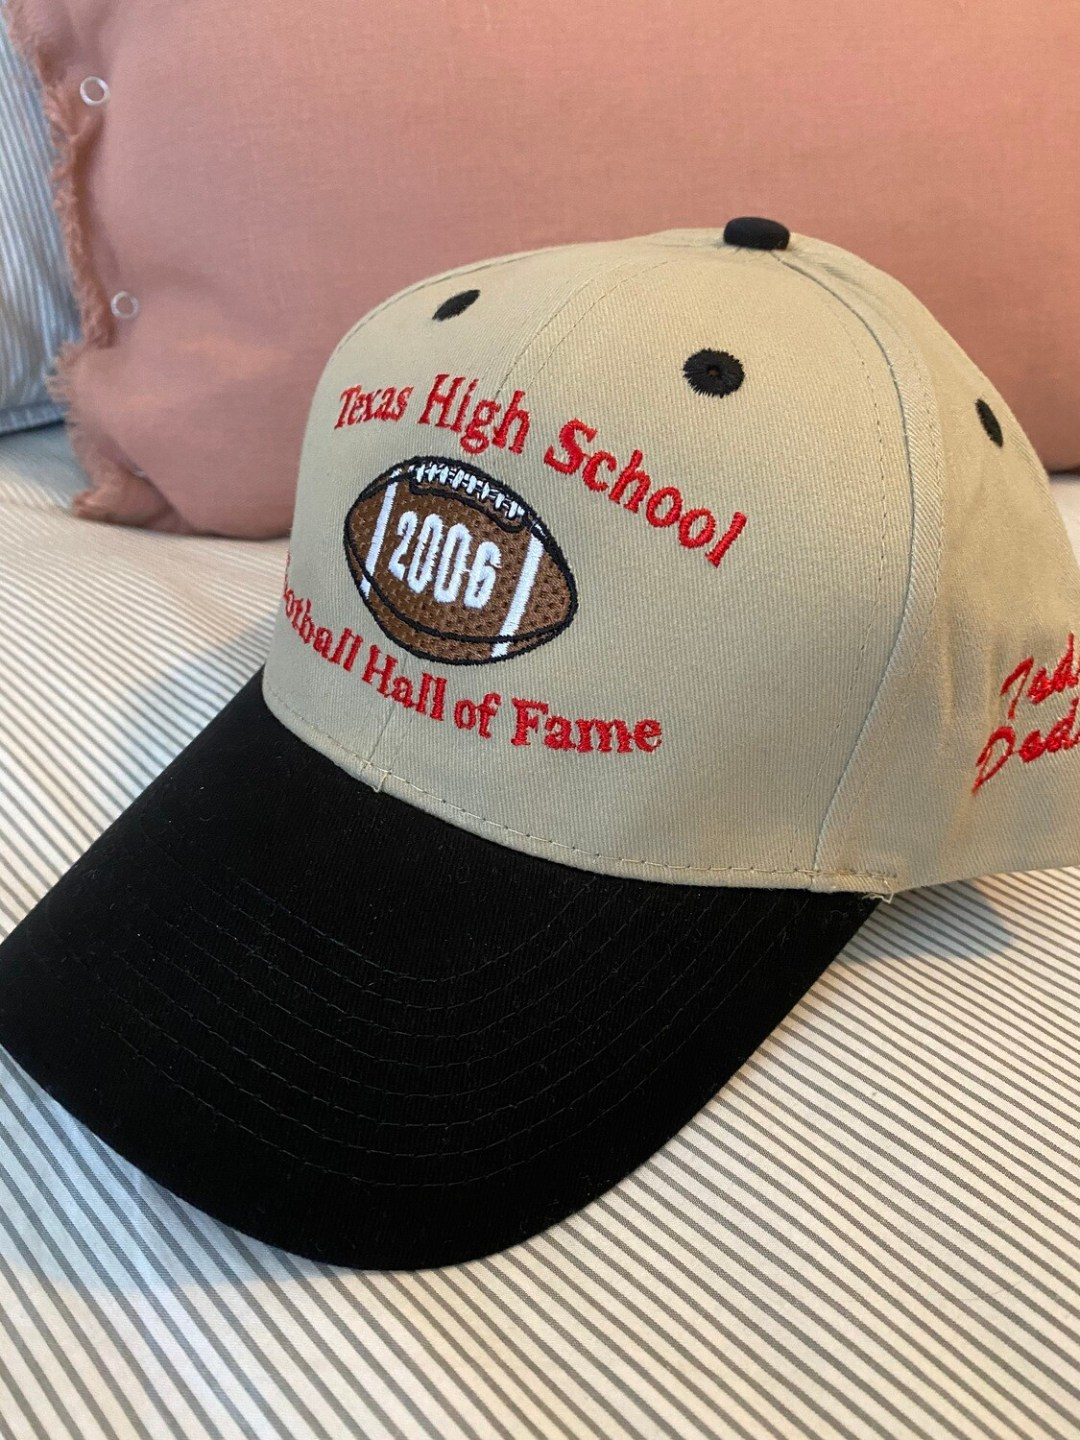 Todd Dodge - Signed Hat 2006 Hall of Fame Inductee